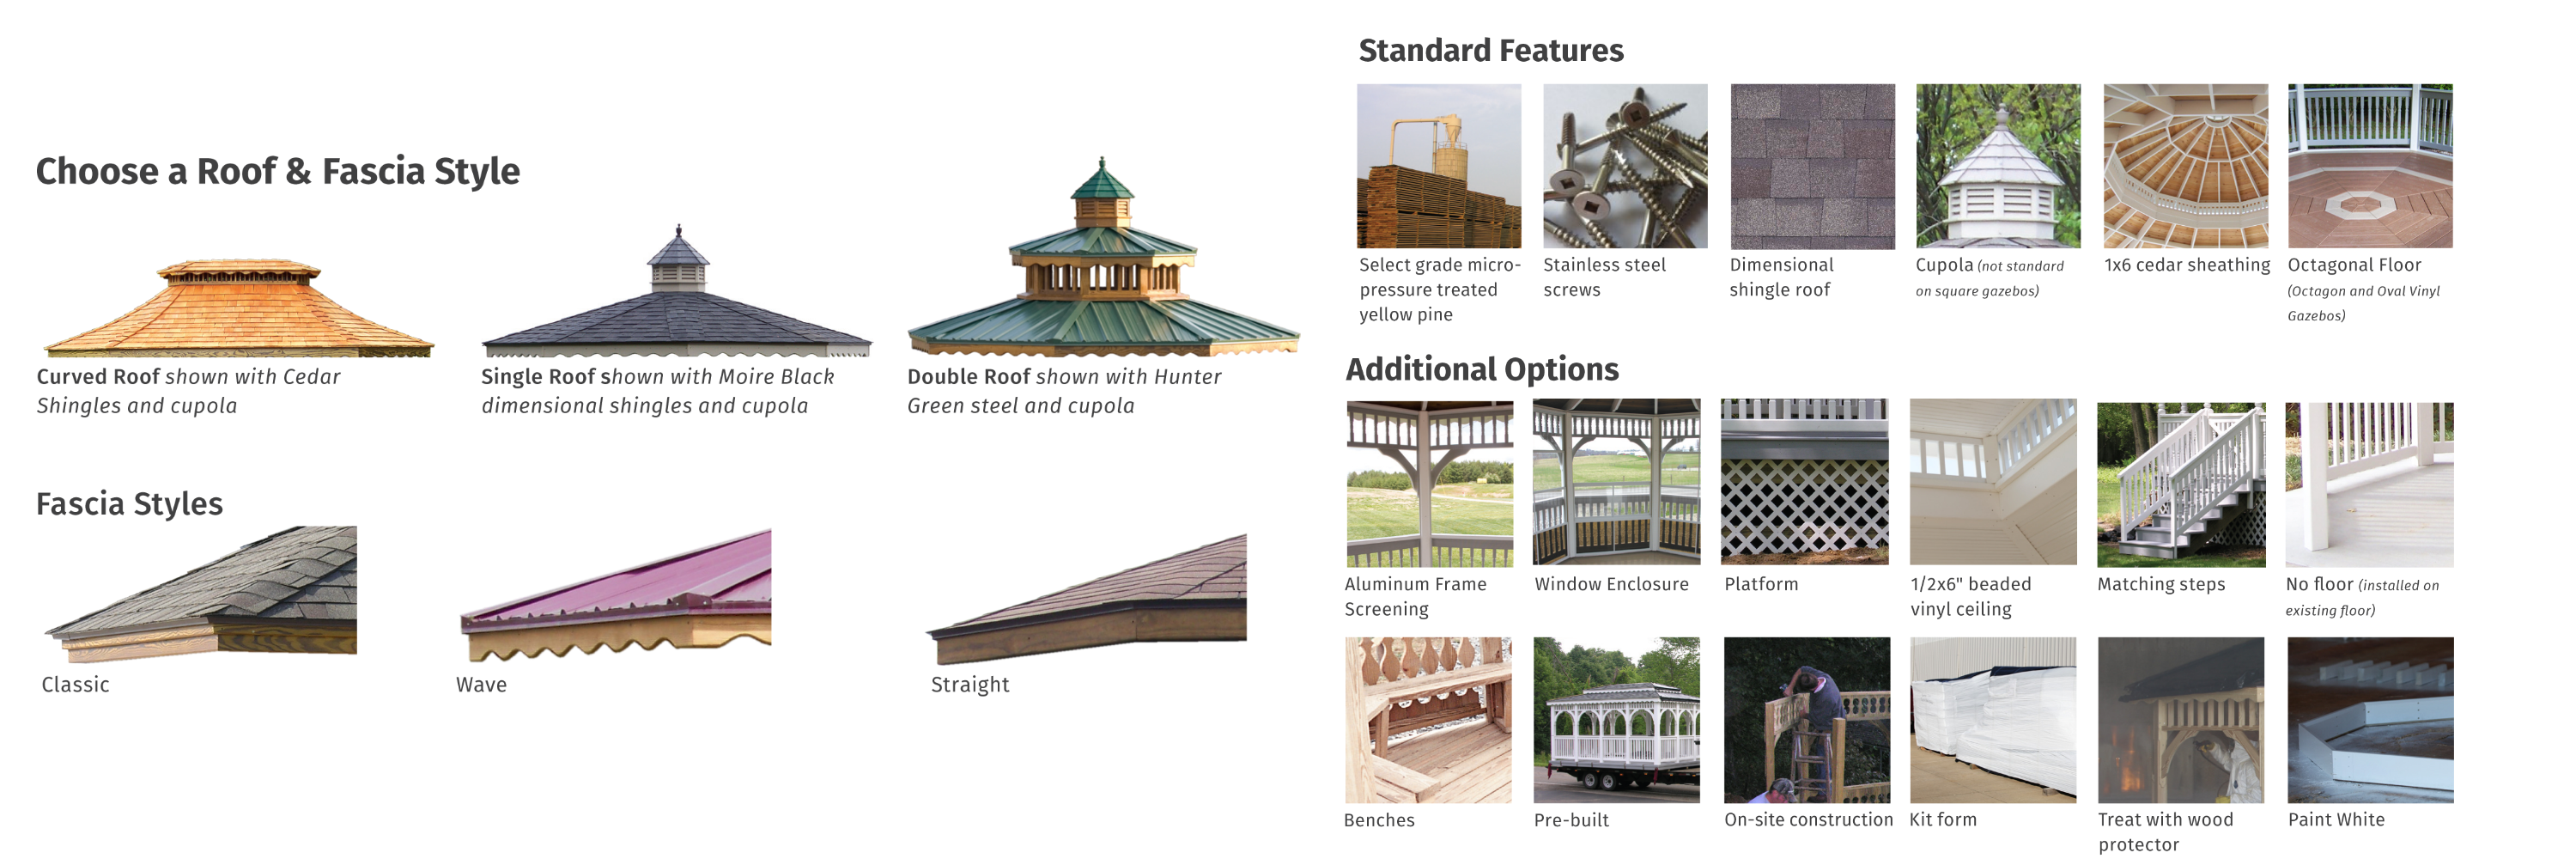 roof-and-features-and-options-for-website-2019-2.png